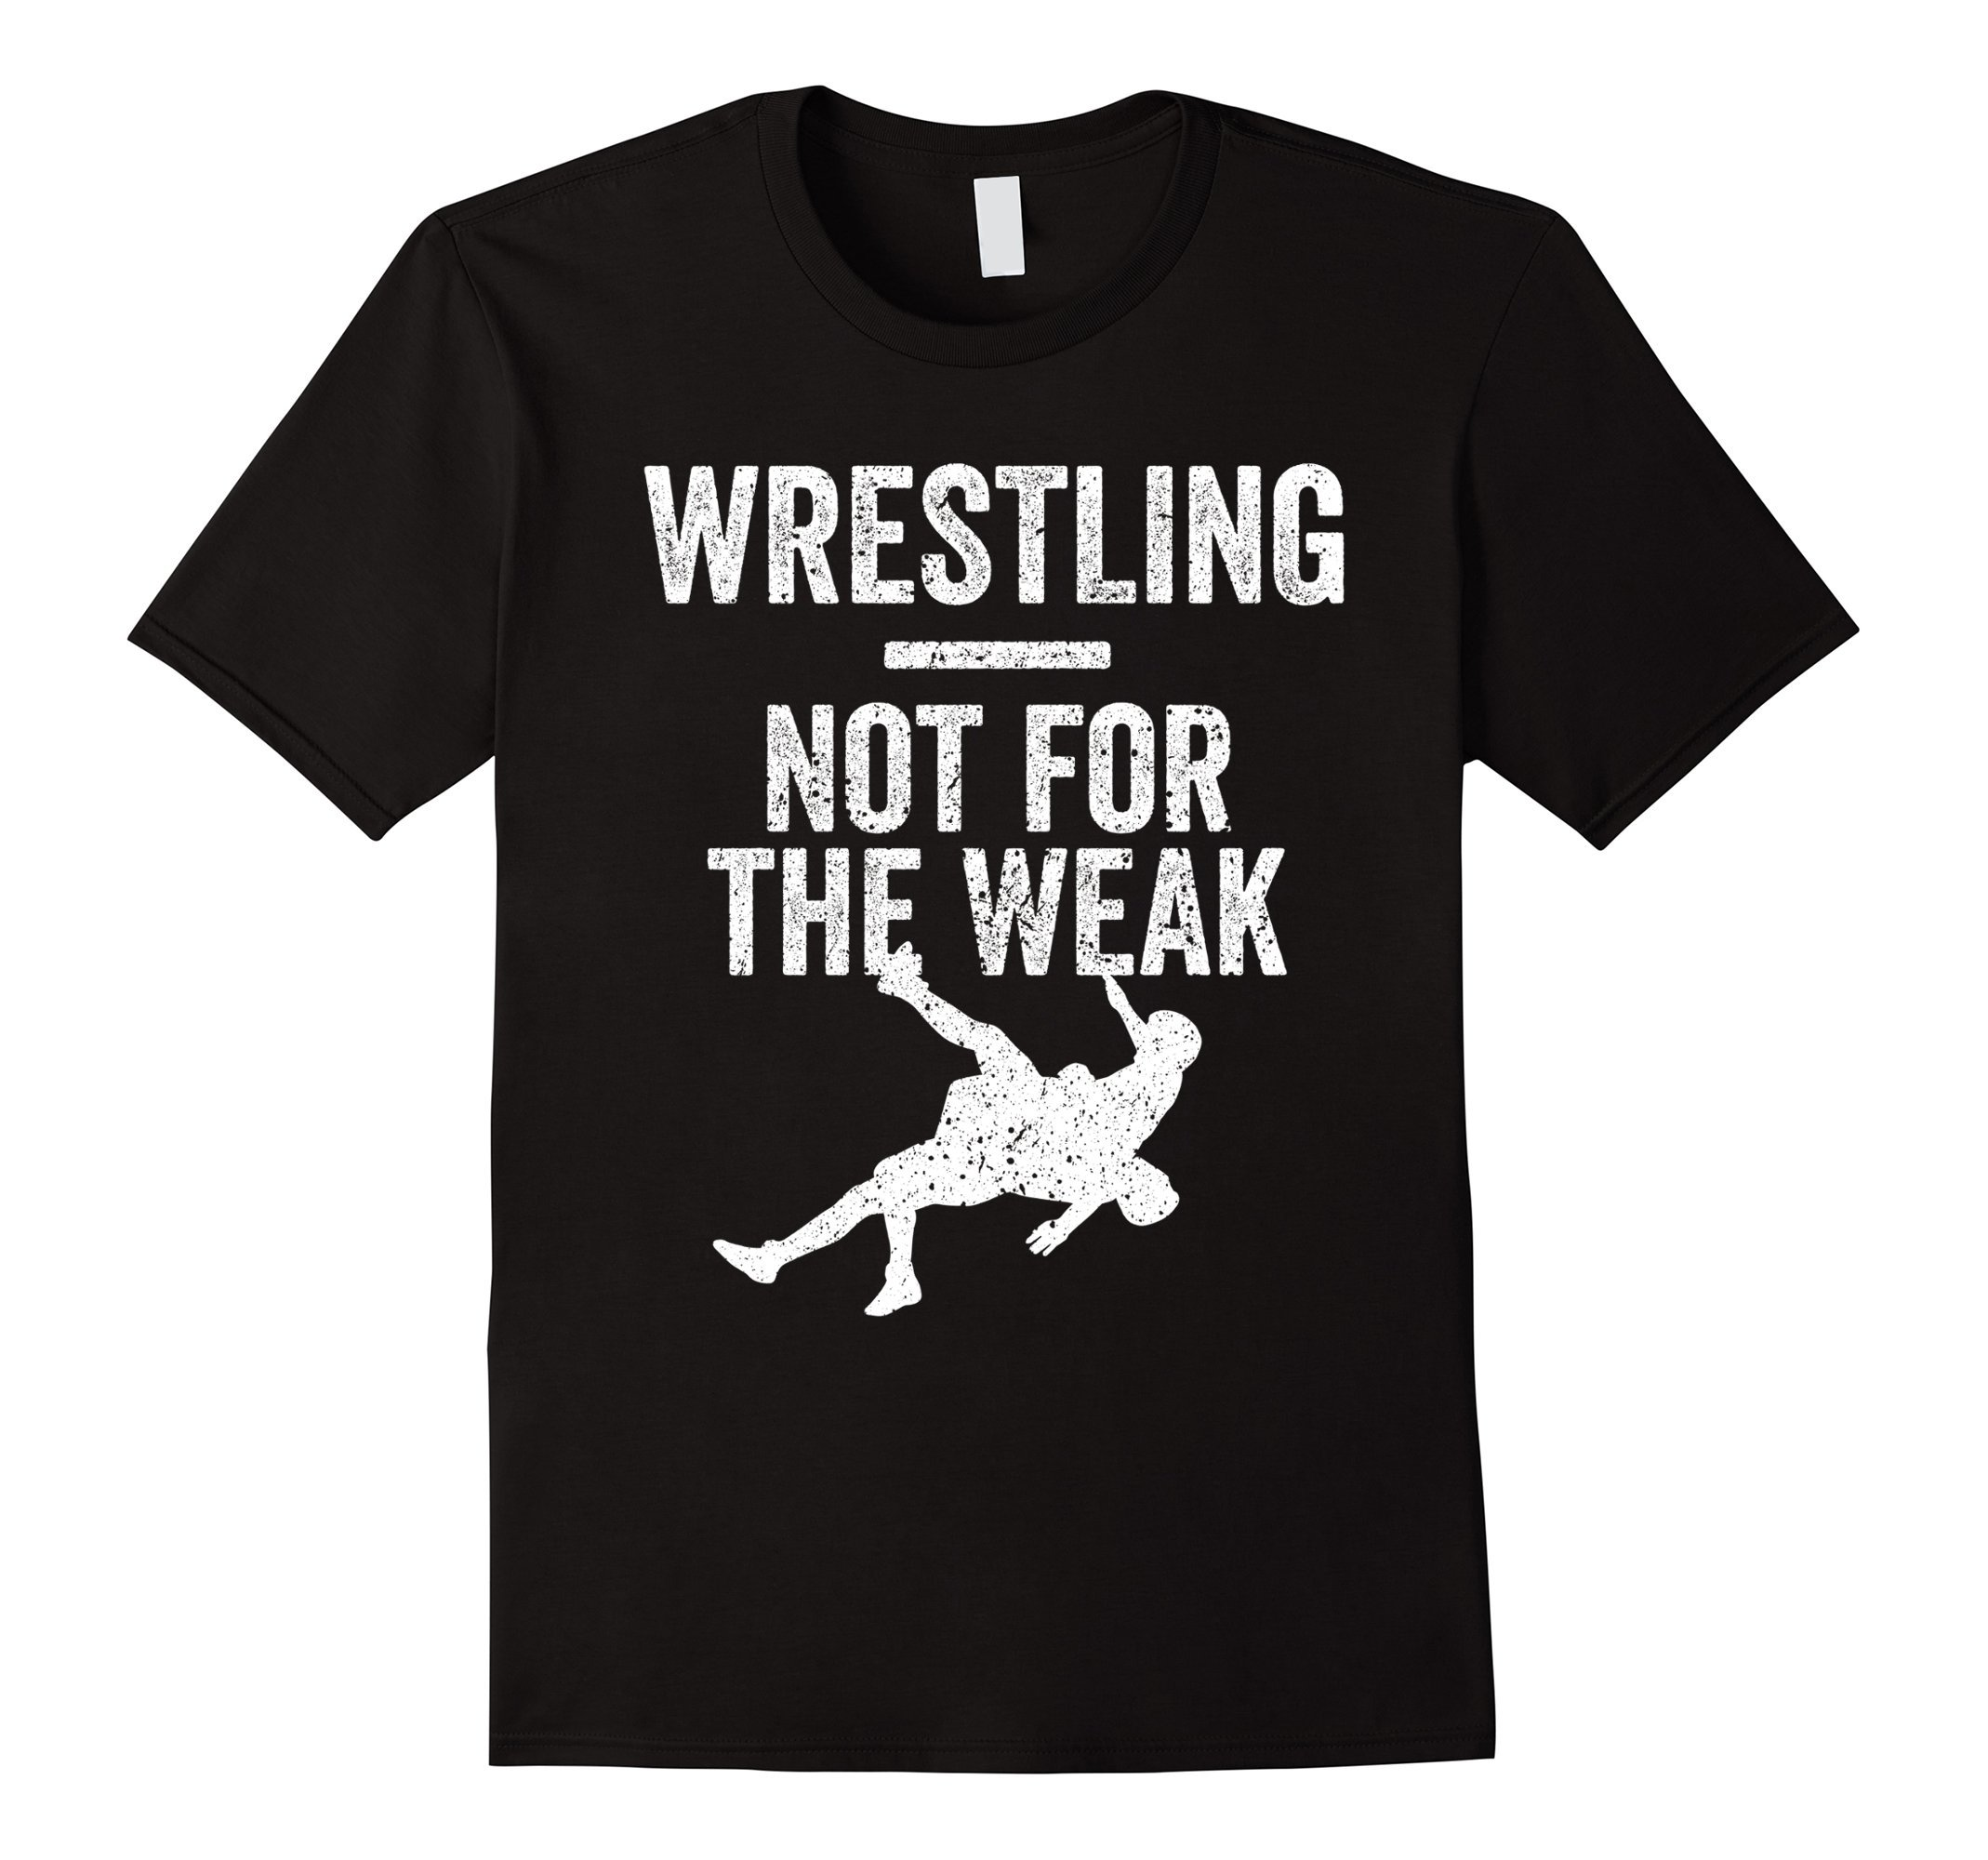 Mens Not For The Weak Wrestling Shirt for Wrestlers, Gift, White Medium Black by Wrestling Shirts and Wrestling Shoes